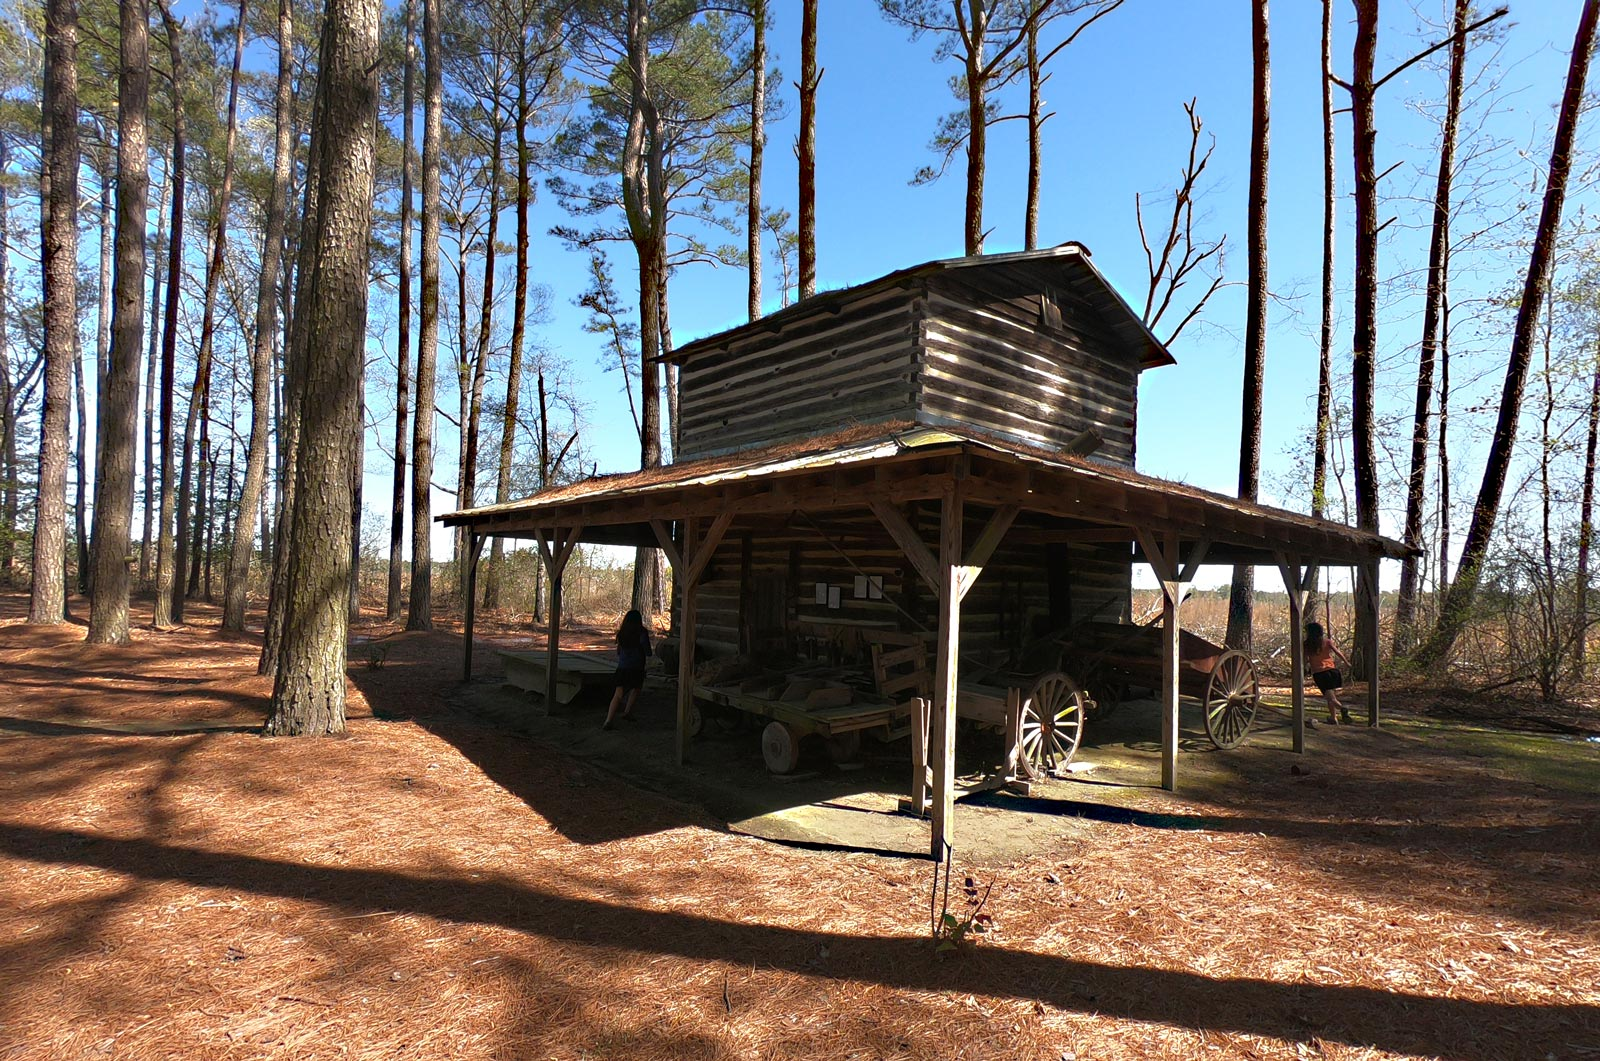 Log-and-mortar building used as a tobacco curing barn at the Tobacco Farm Life Museum, Kenly, North Carolina